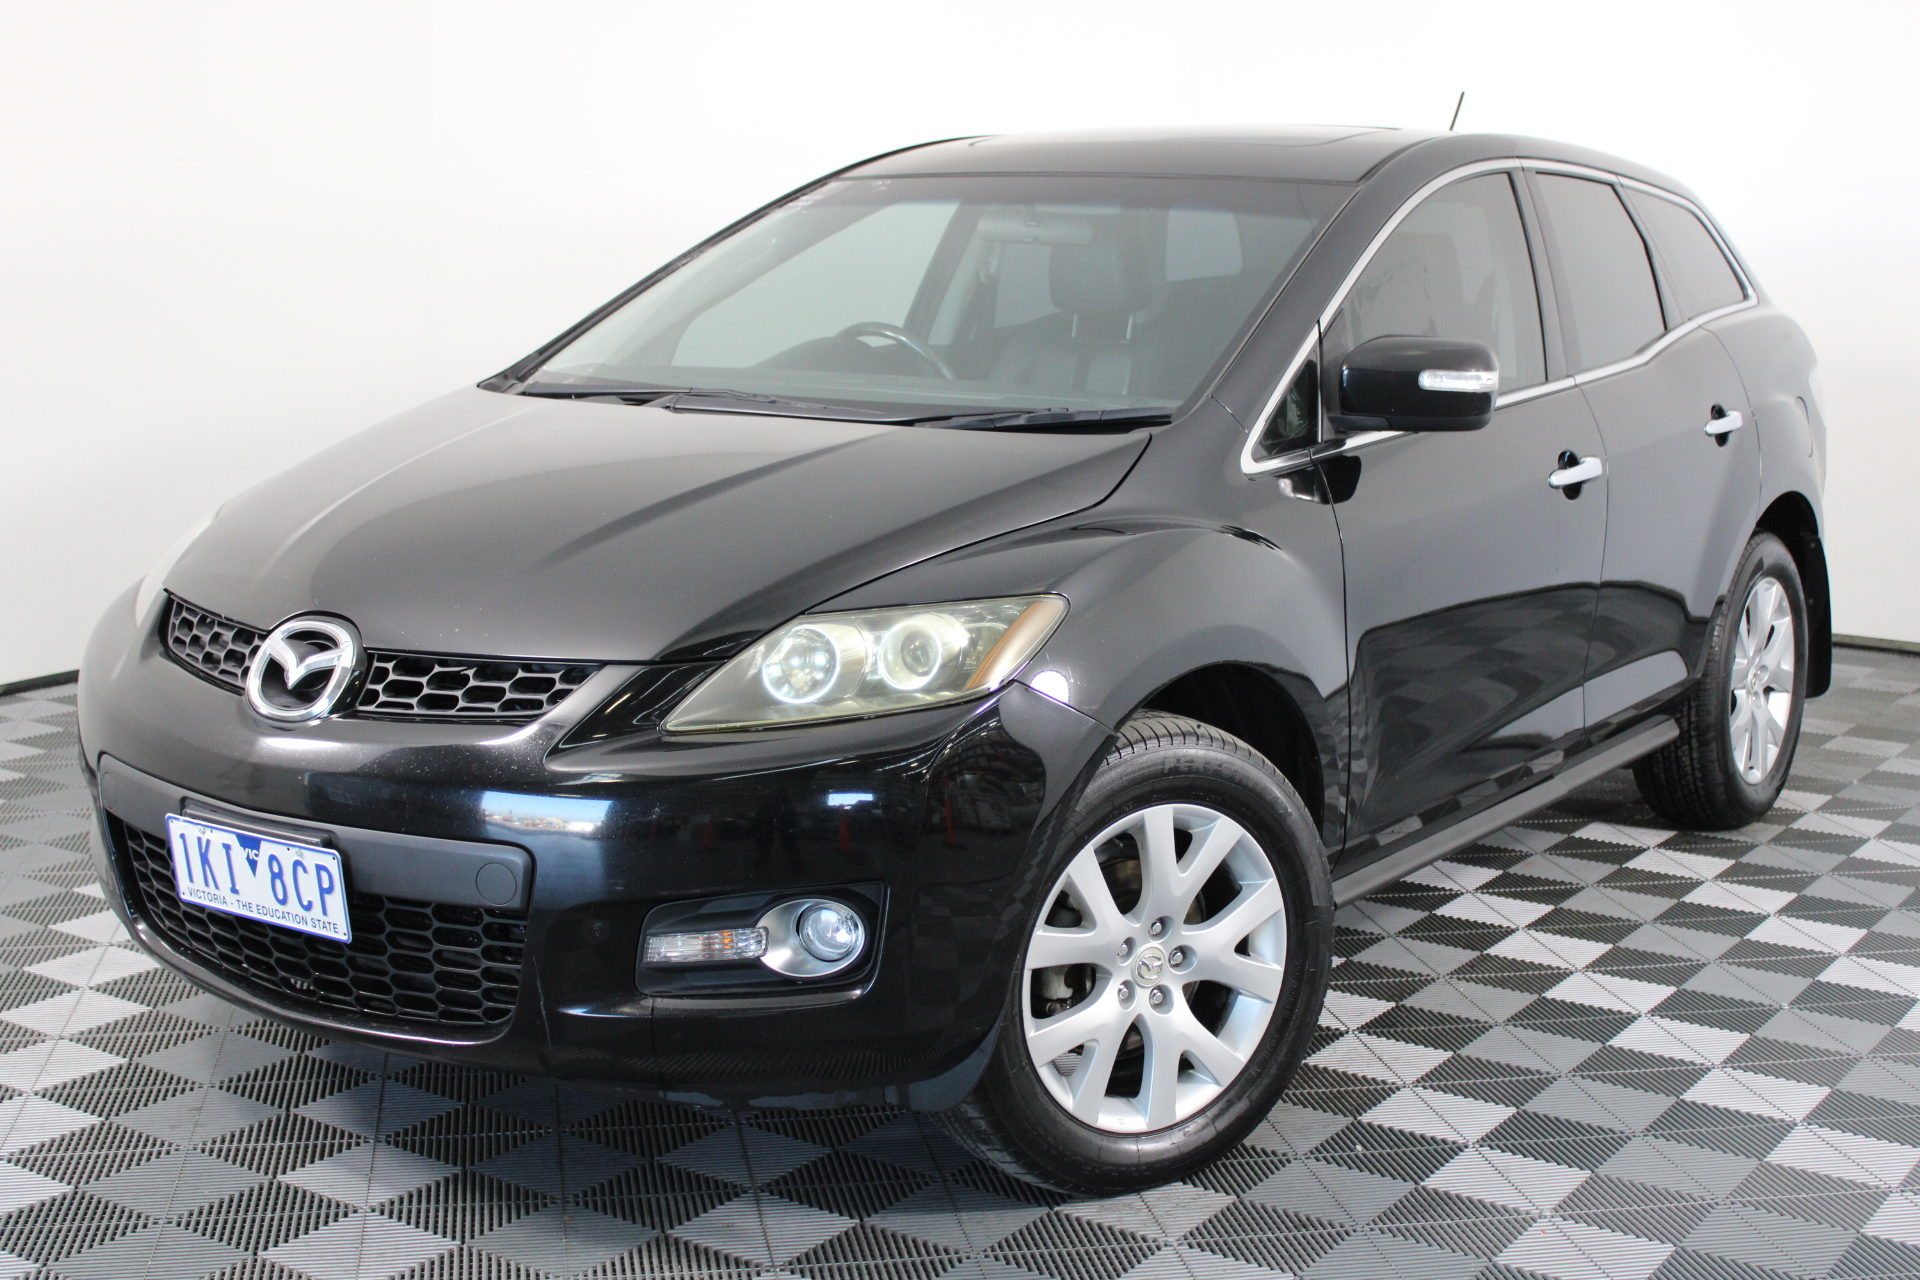 2007 Mazda CX-7 Luxury (4x4) Automatic Wagon (WOVR - Inspected)